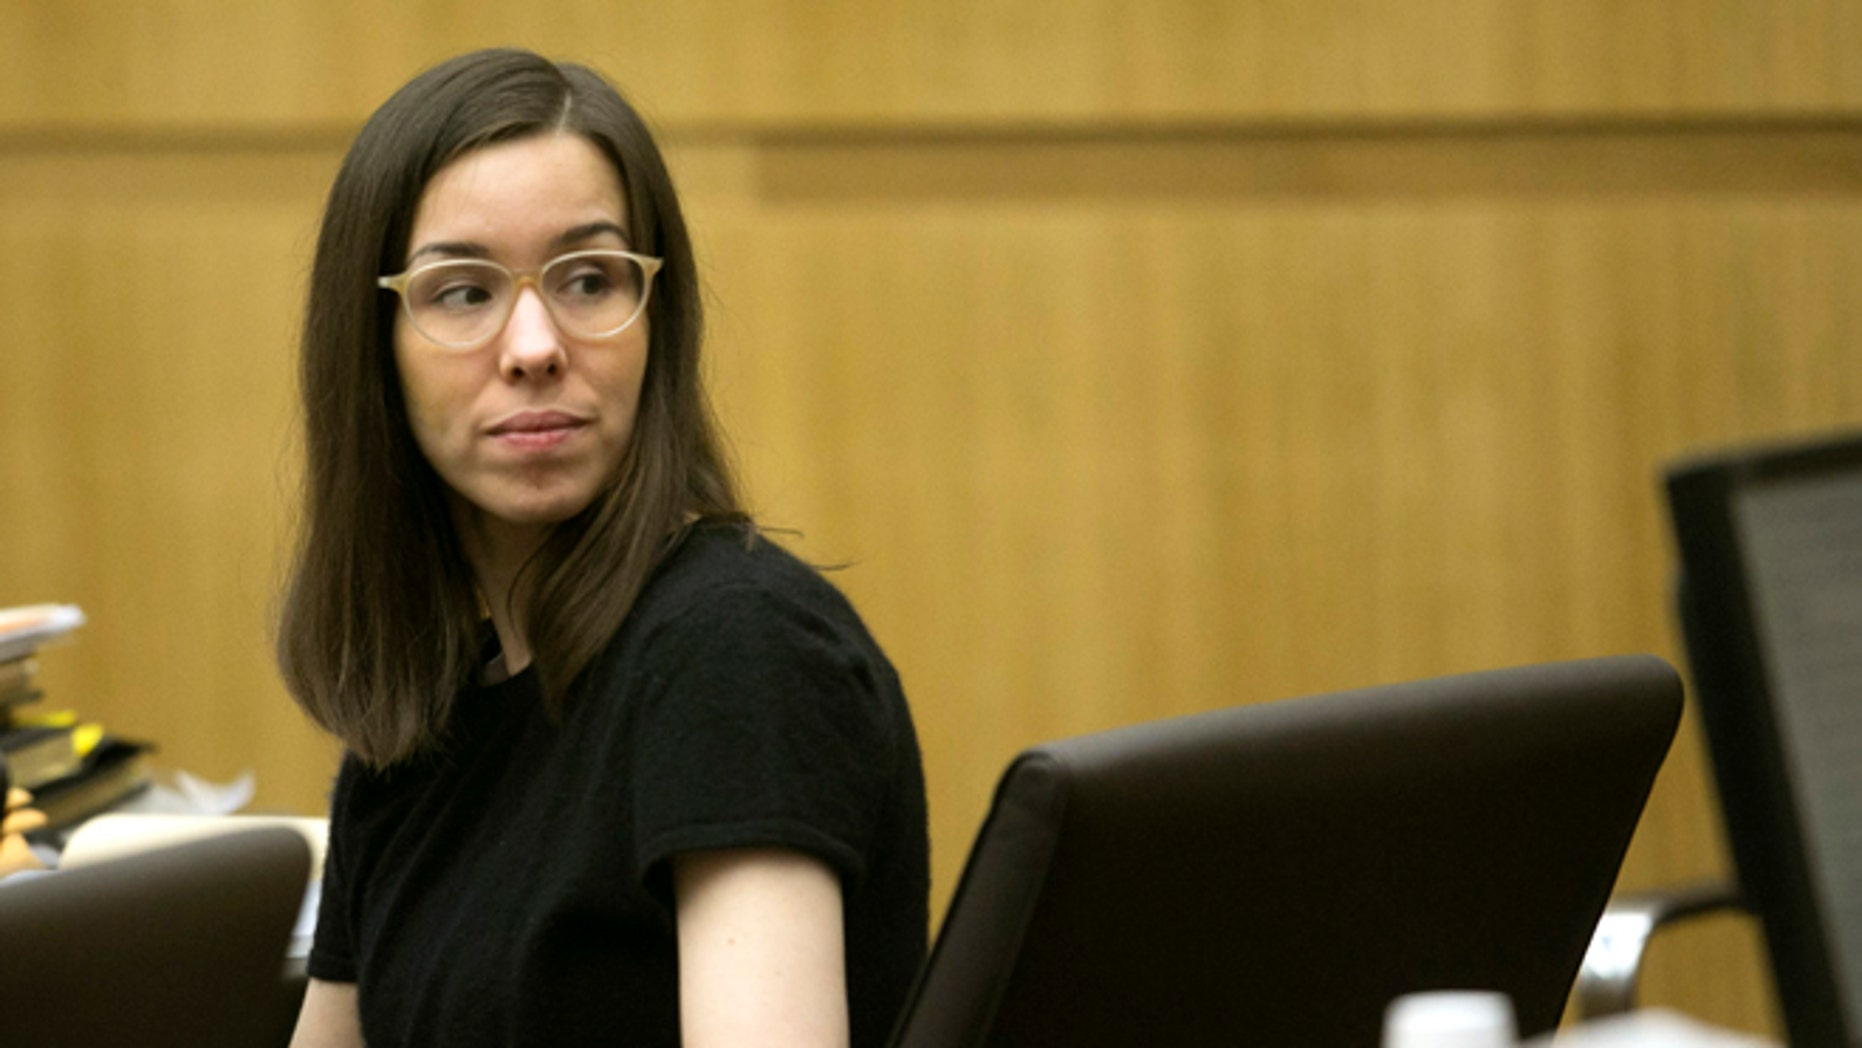 Jodi Arias looks back at the gallery during the sentencing phase of her trial at Maricopa County Superior Court in Phoenix on Wednesday, Dec. 17, 2014. (AP Photo/The Arizona Republic, David Wallace, Pool)